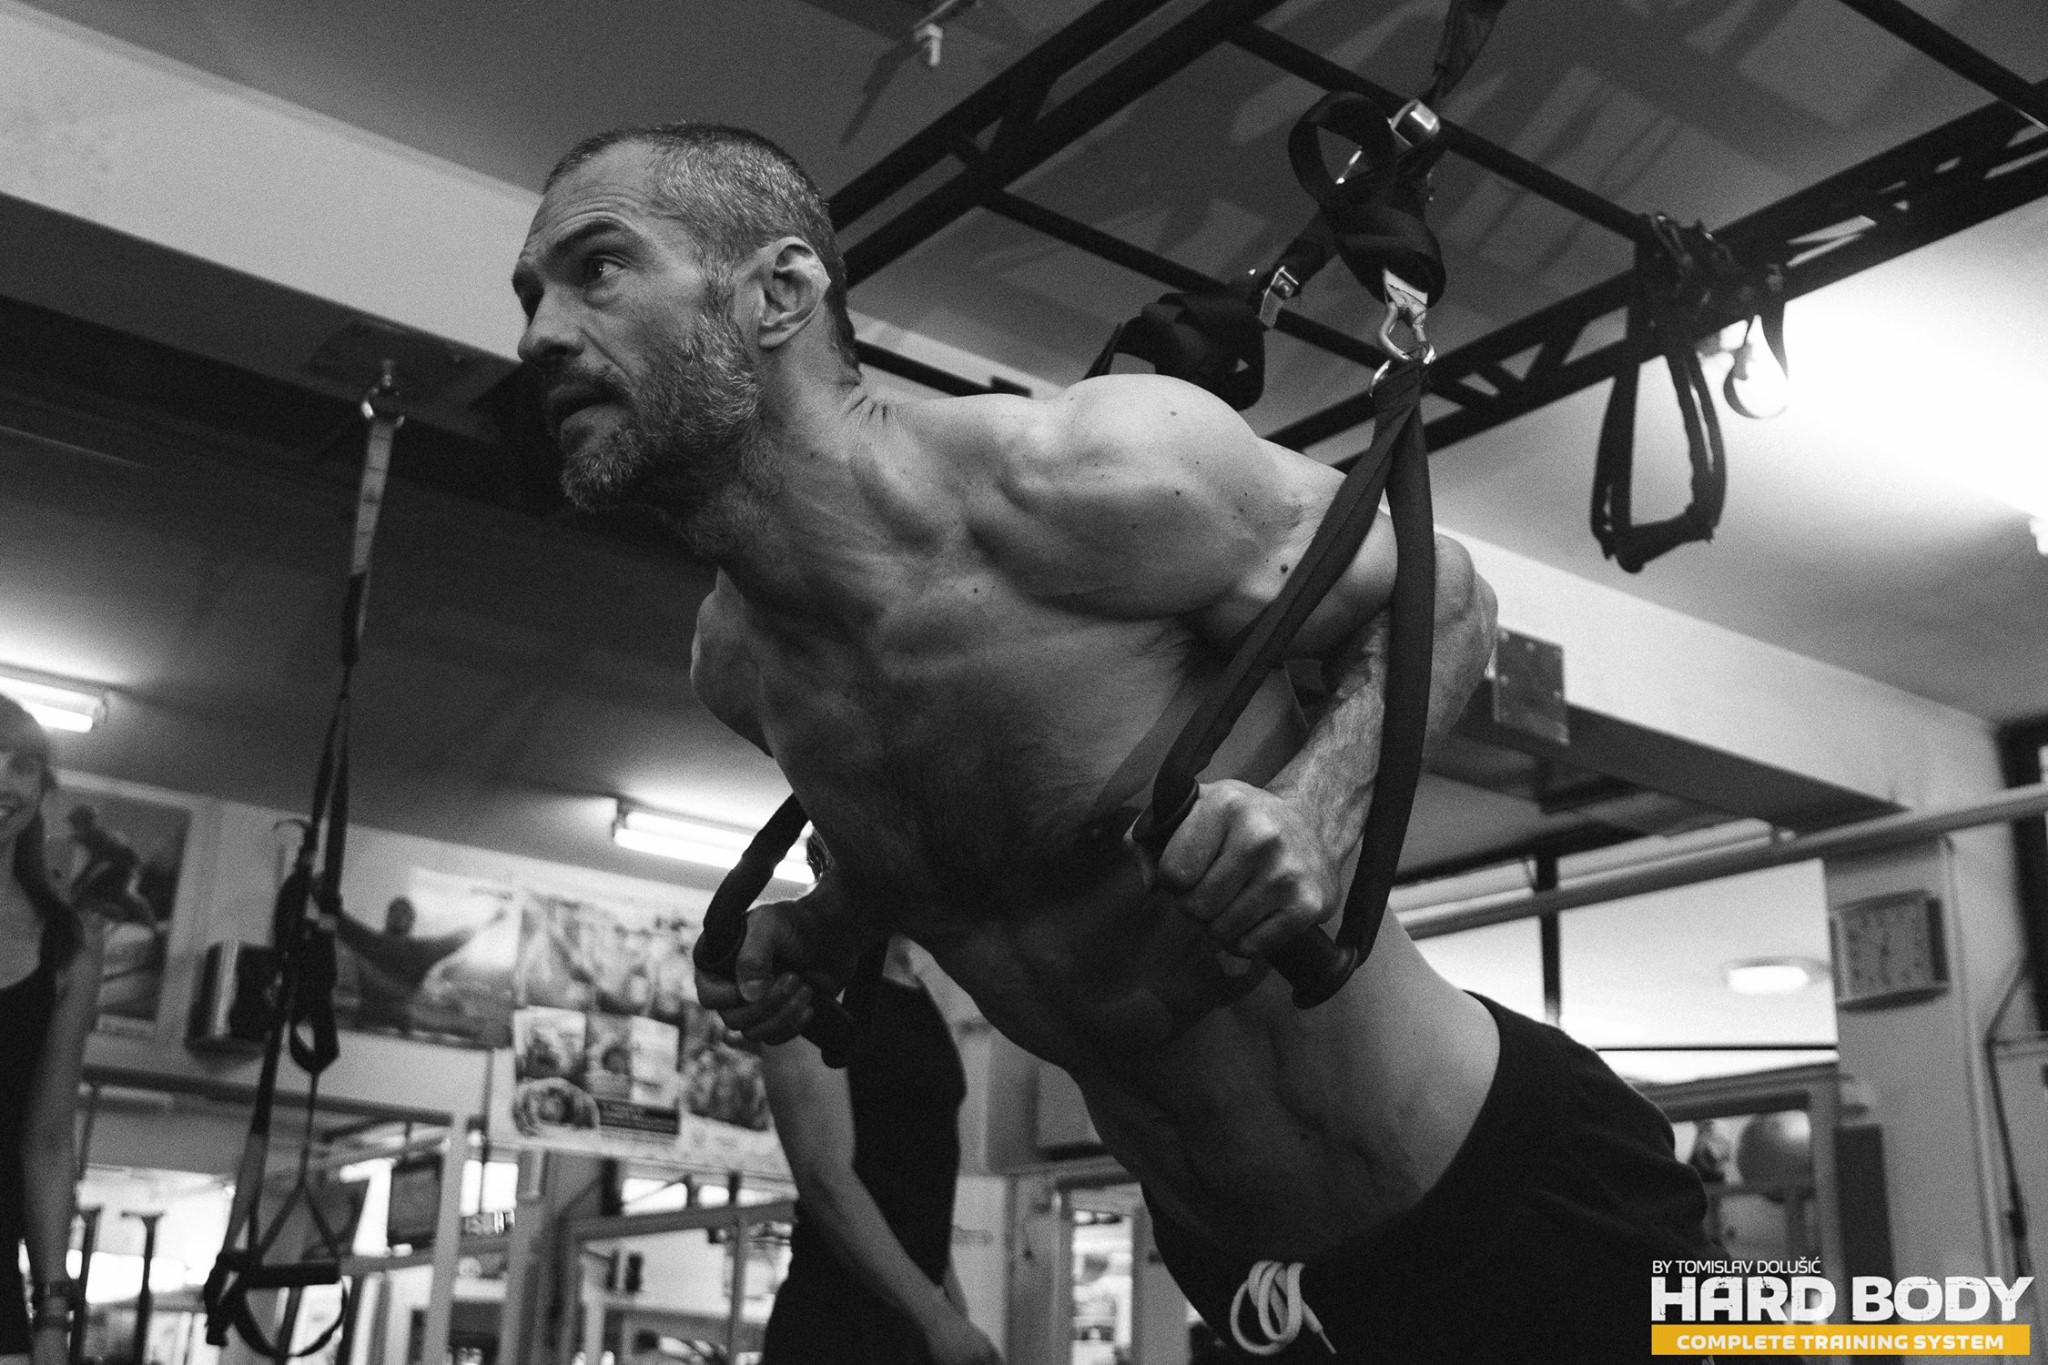 Tomislav Dolusic, owner of Hard Body